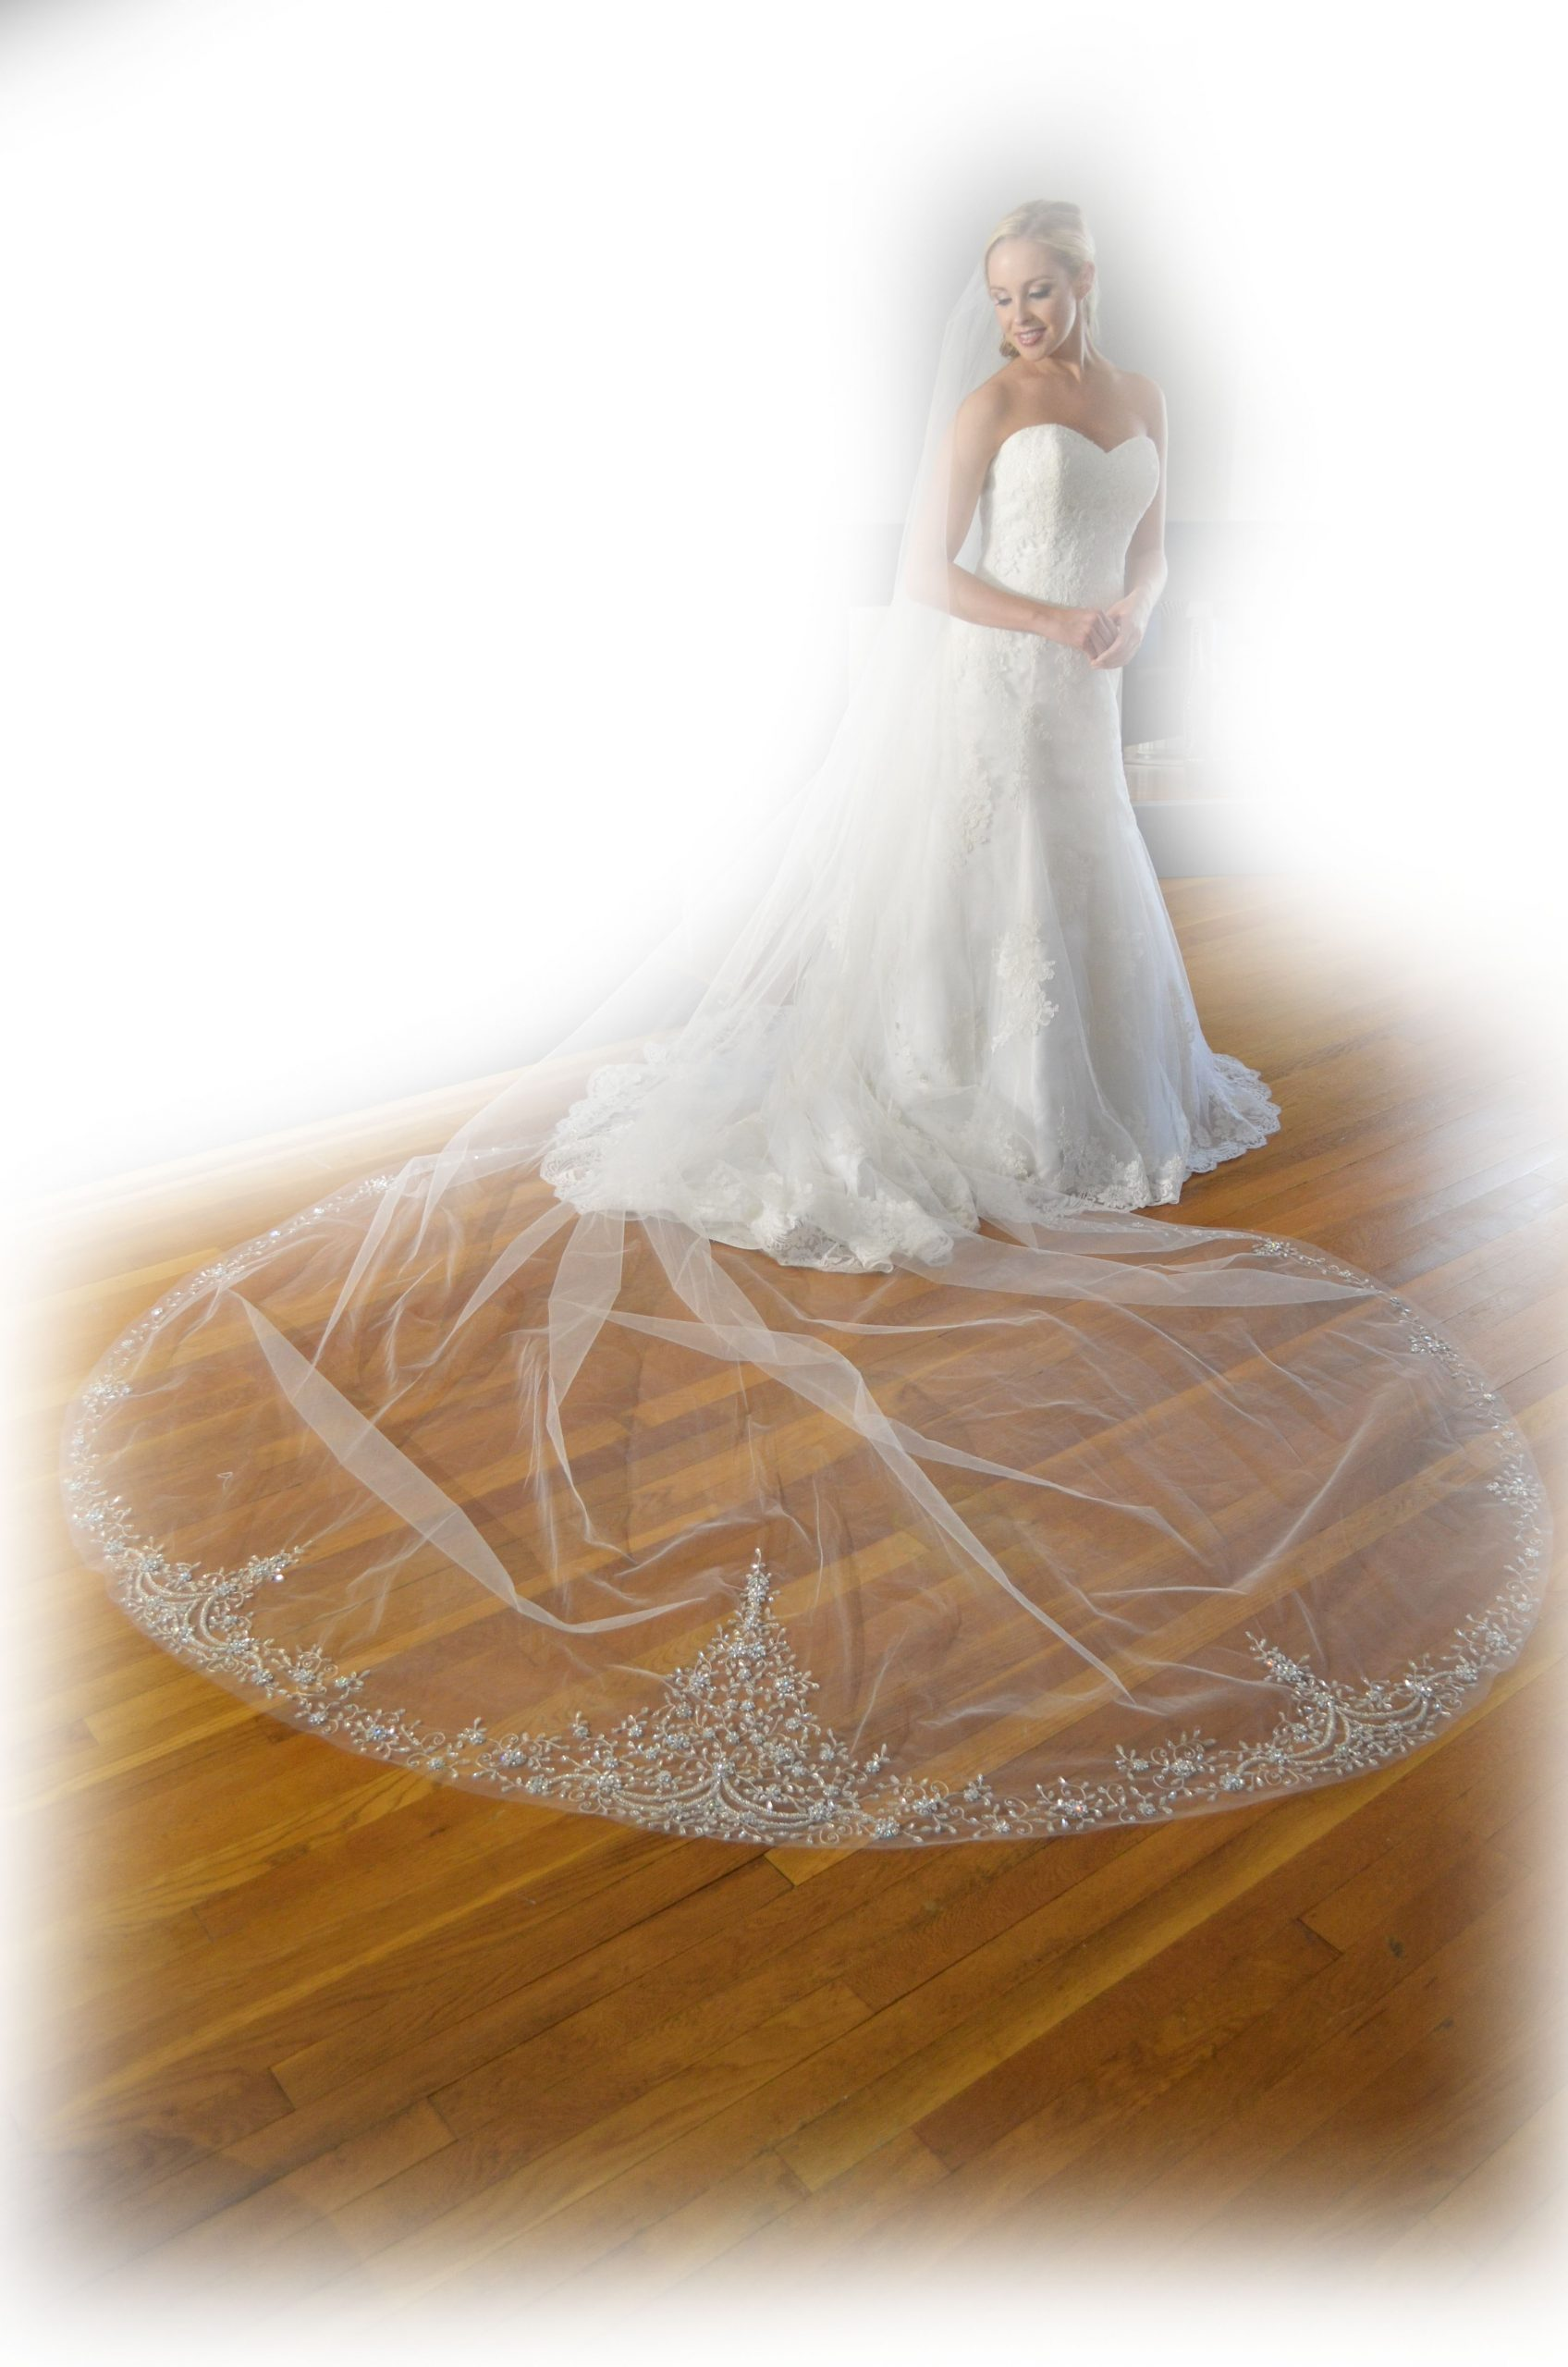 Elena E1211  Cathedral length veil with heavily embellished edge with silver embroidery, silver beading, & rhinestones.